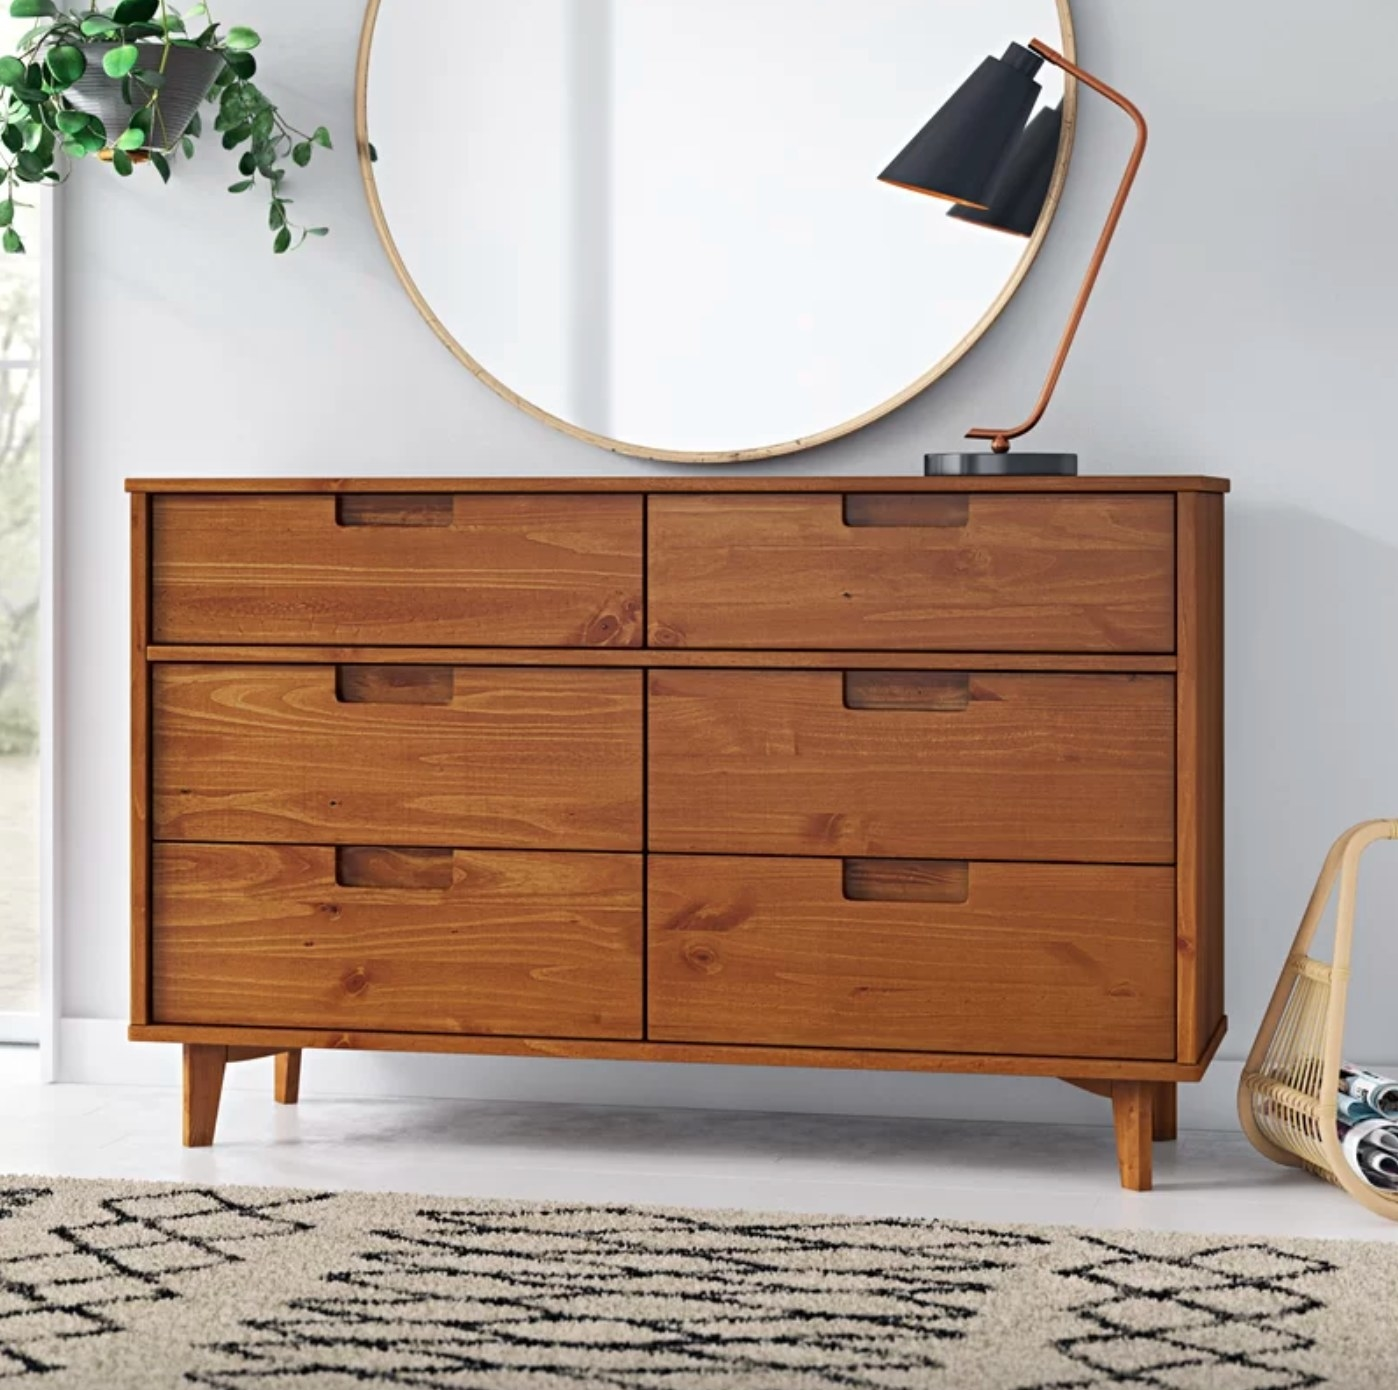 The six drawer double dresser in caramel holding a lamp